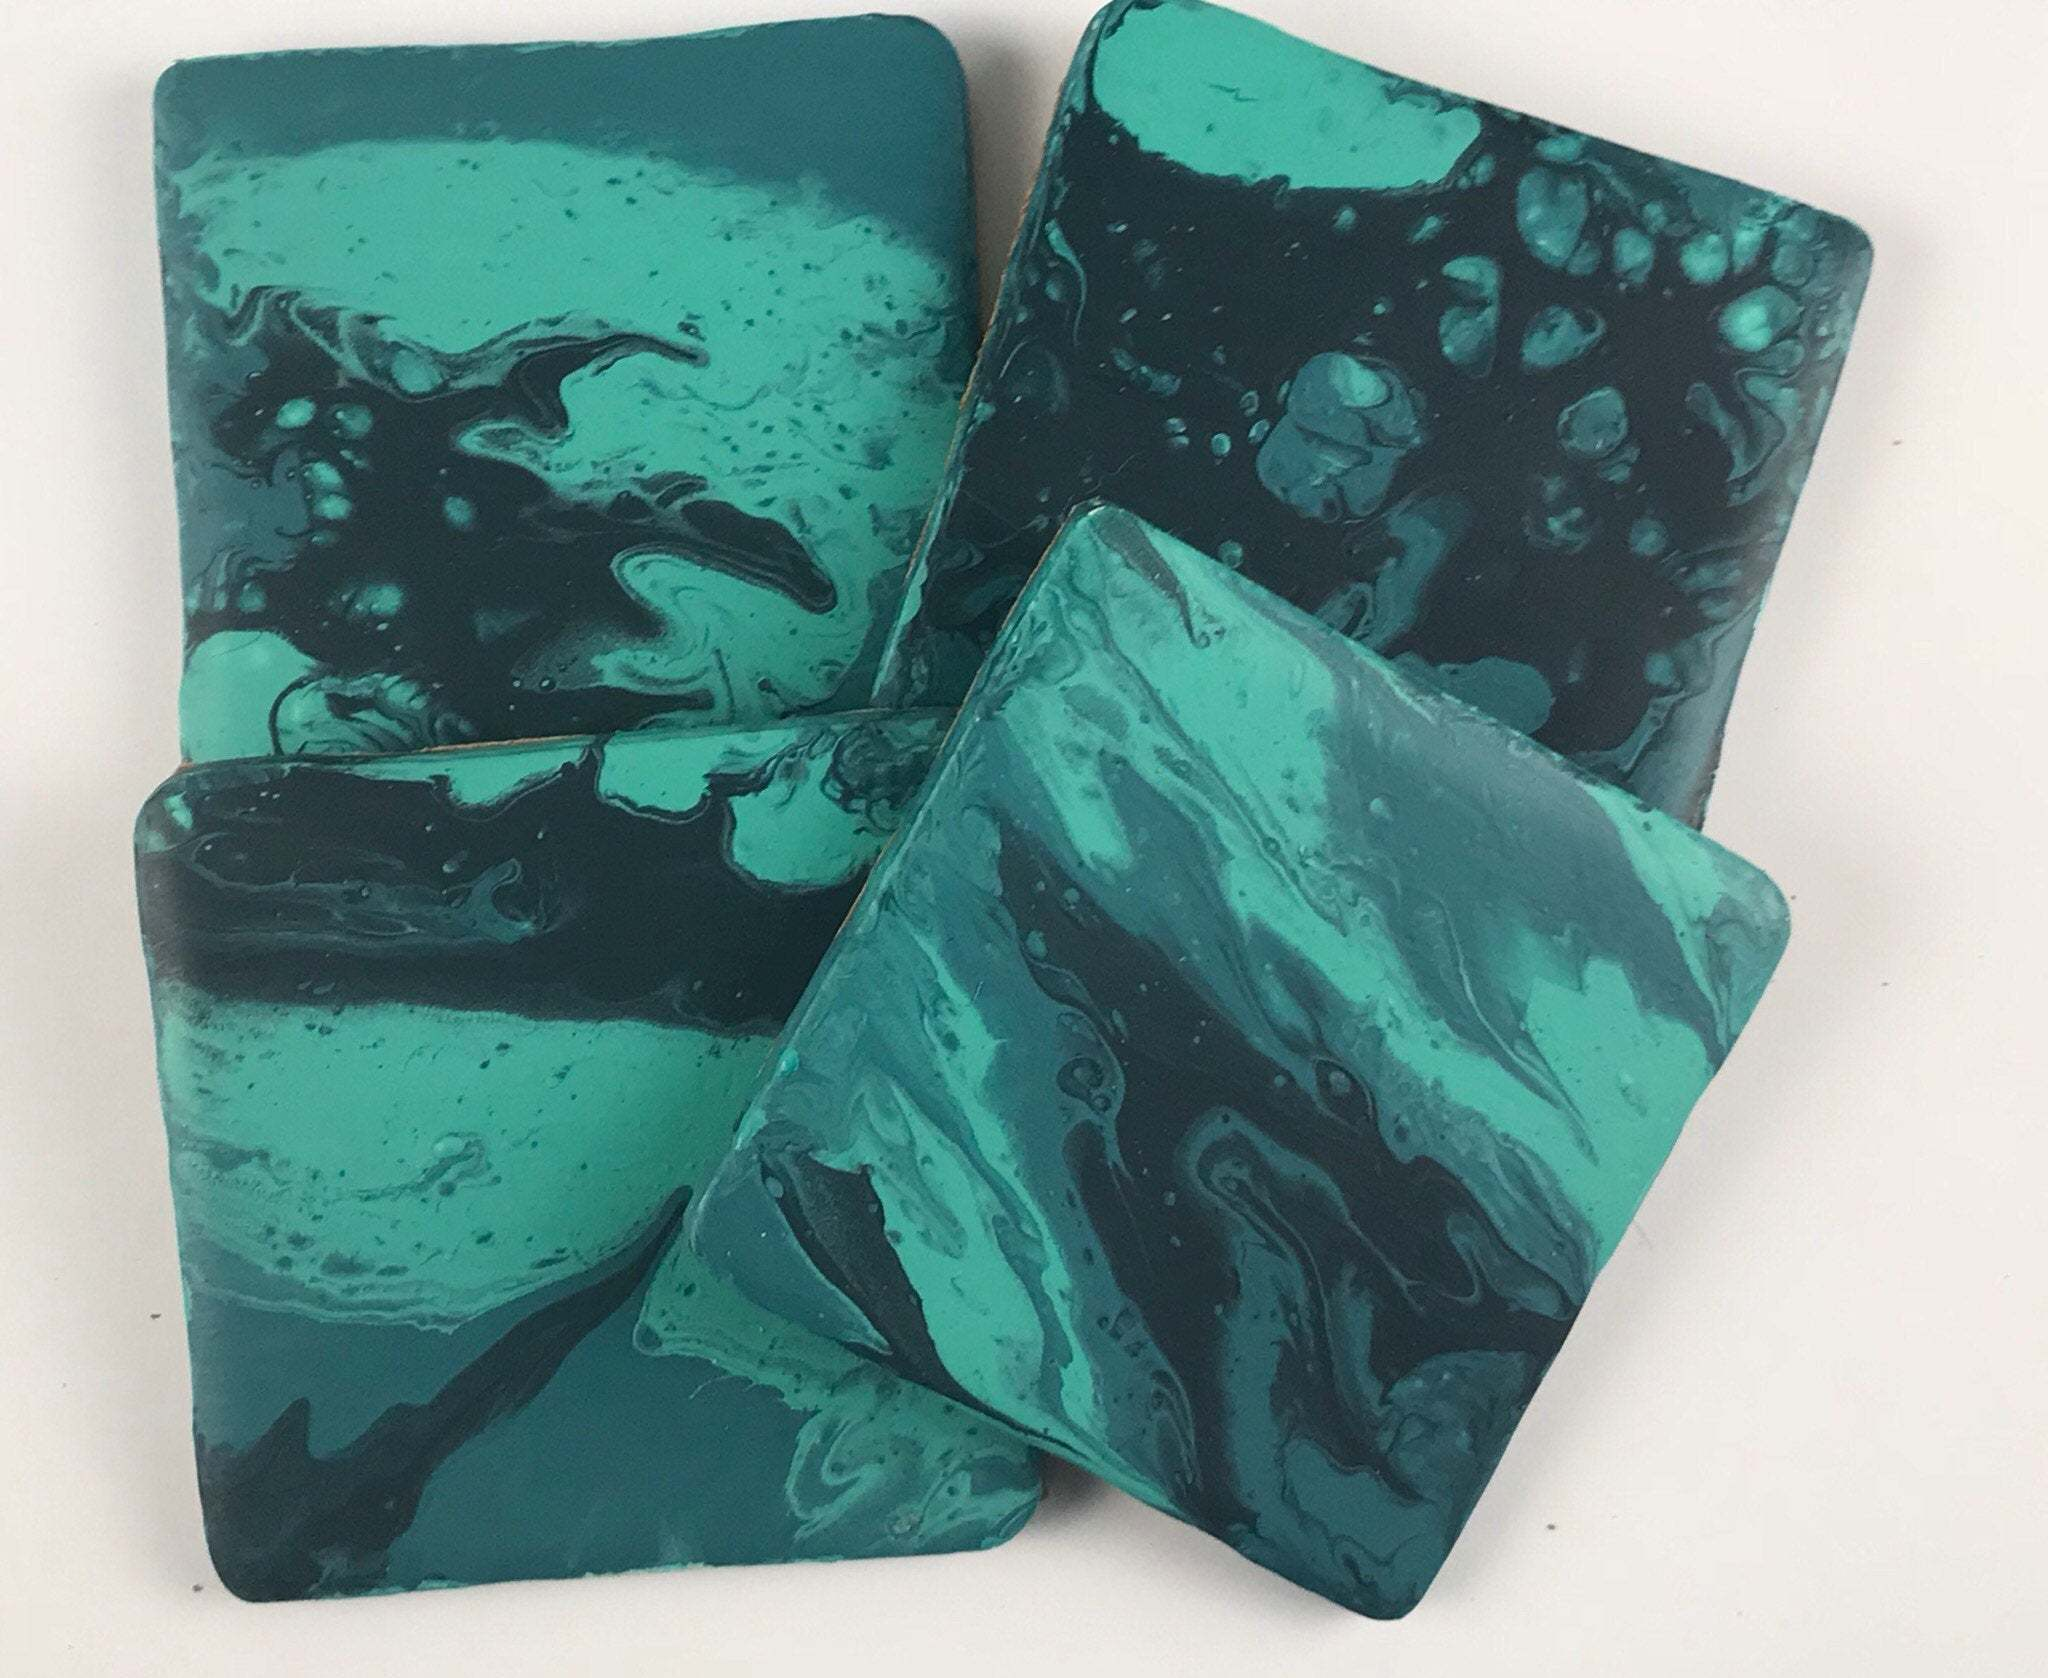 Set Of 4 Ceramic Coasters, Handmade With Acrylic Paint Pour In Teals, Made  To Order Requests Taken, Matching Set Of Coasters   vinterior co